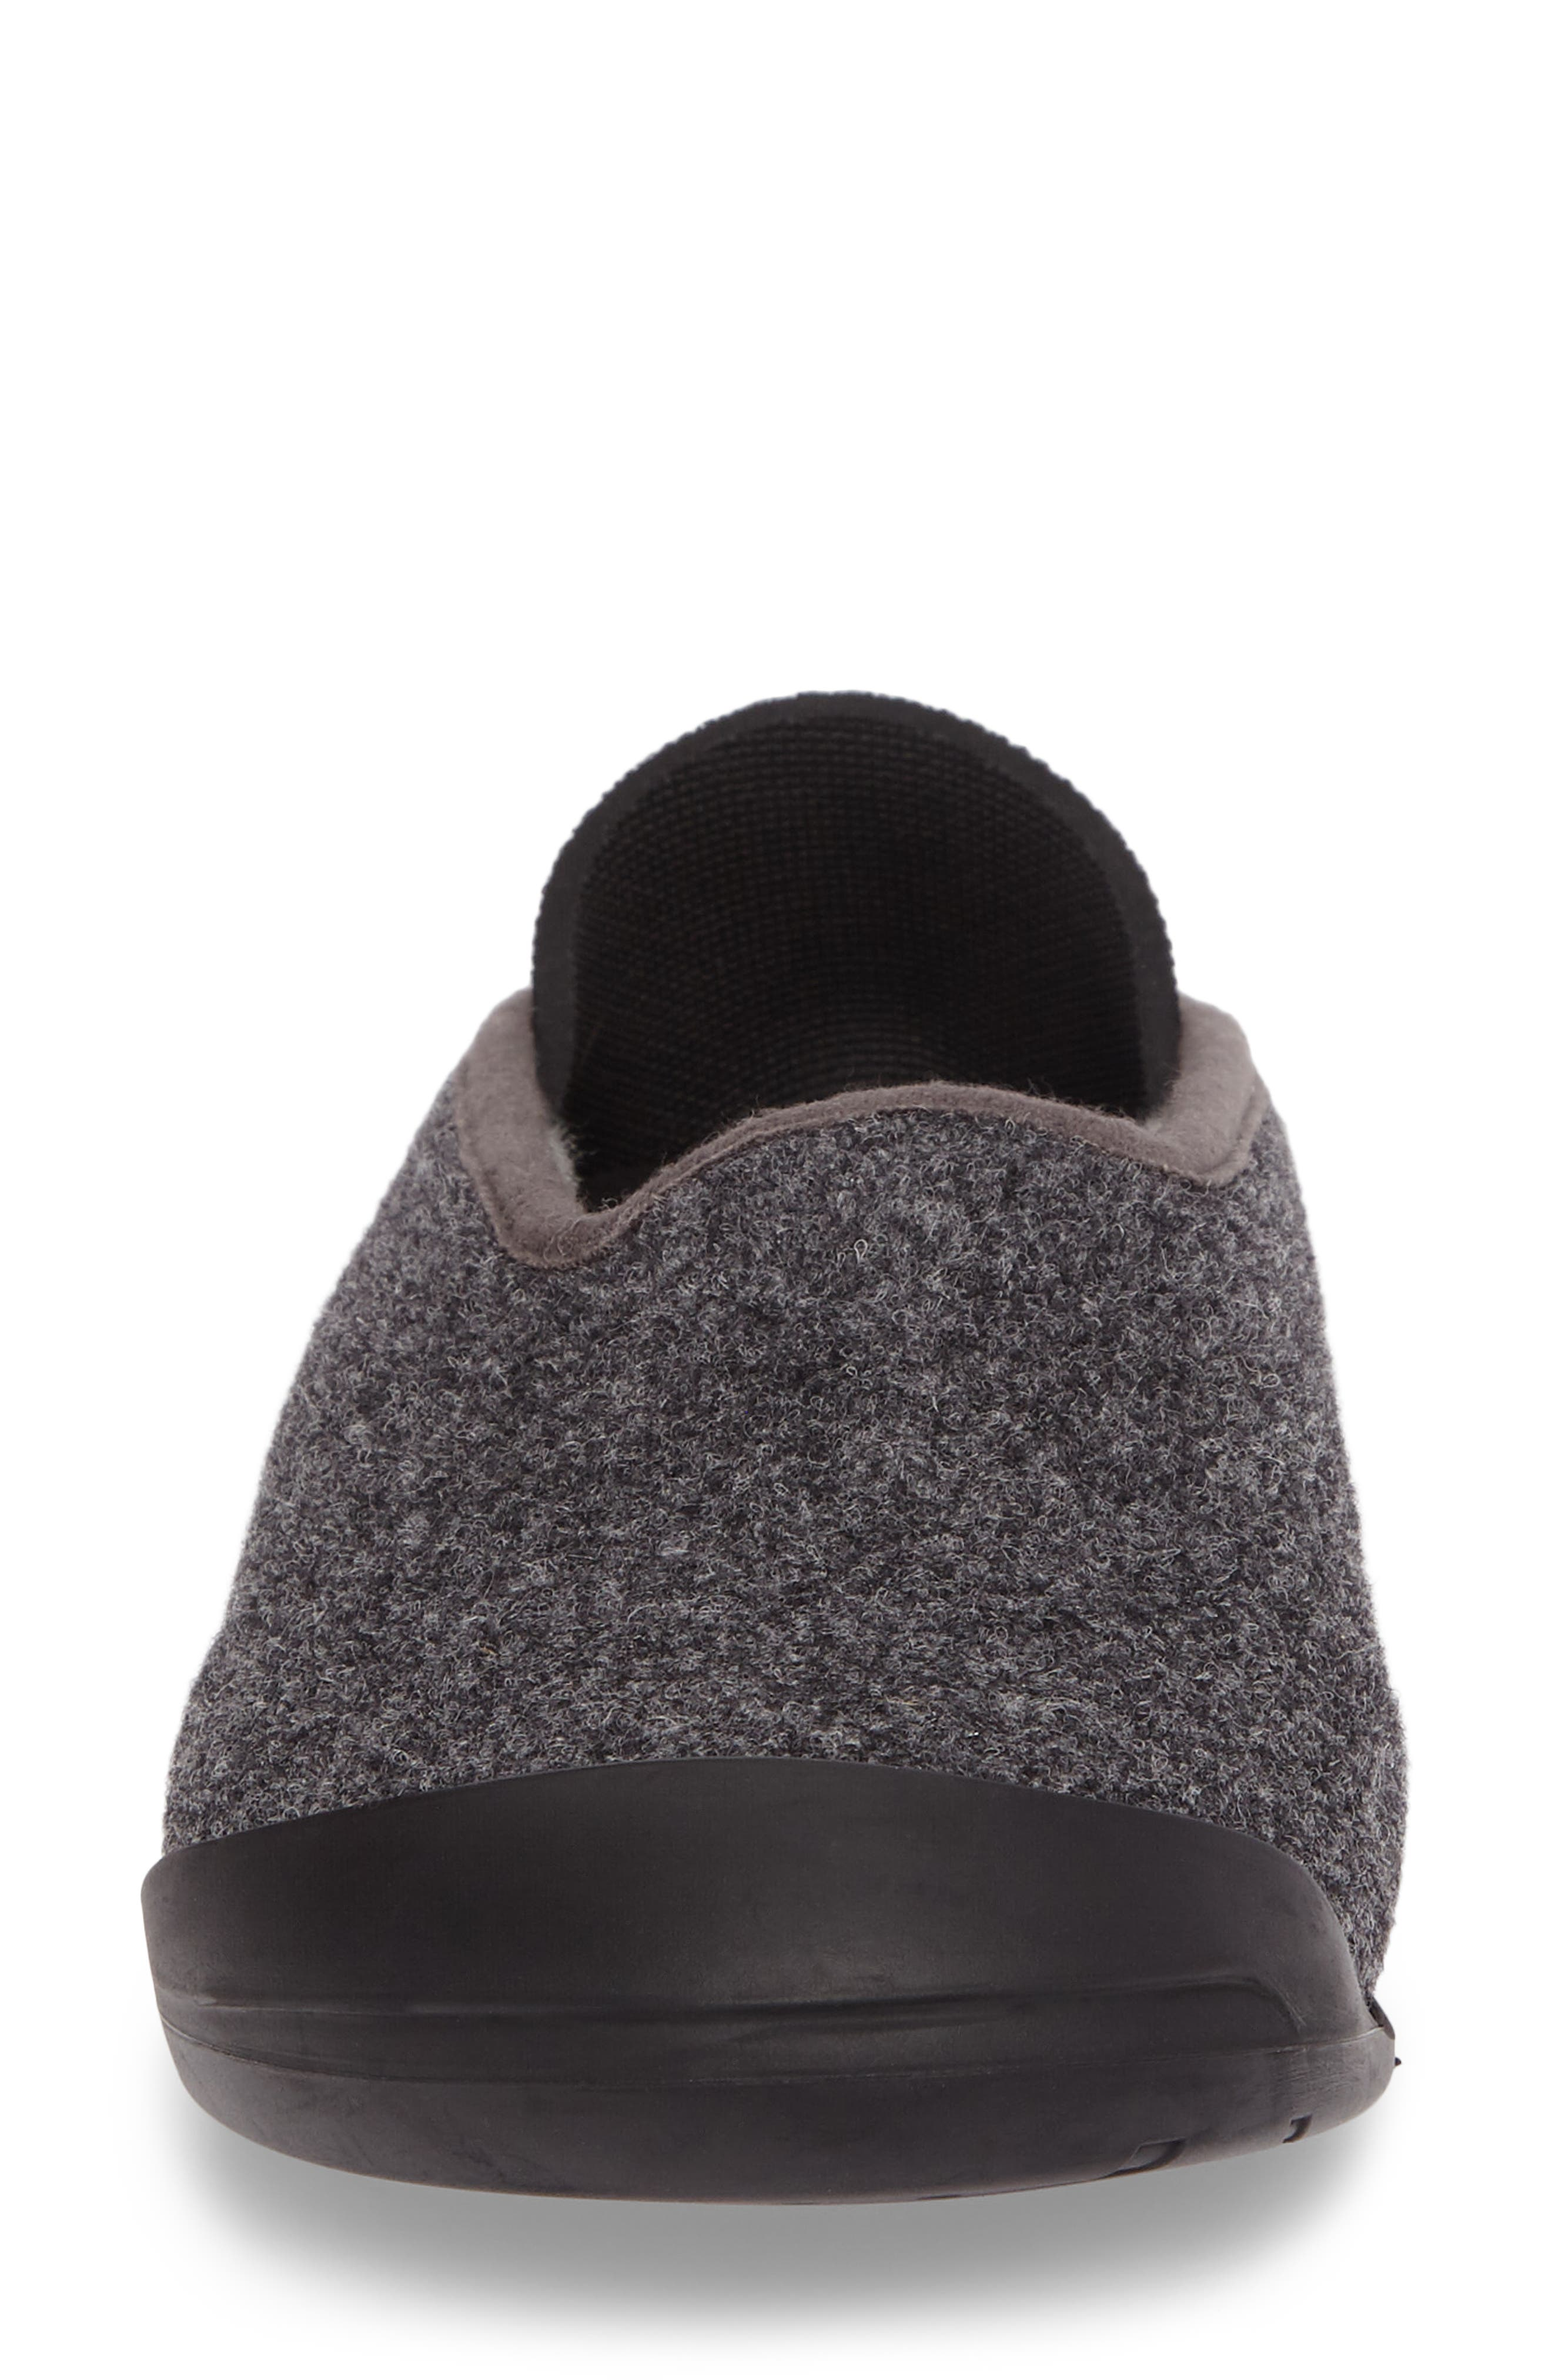 Classic Convertible Indoor/Outdoor Slipper,                             Alternate thumbnail 4, color,                             022